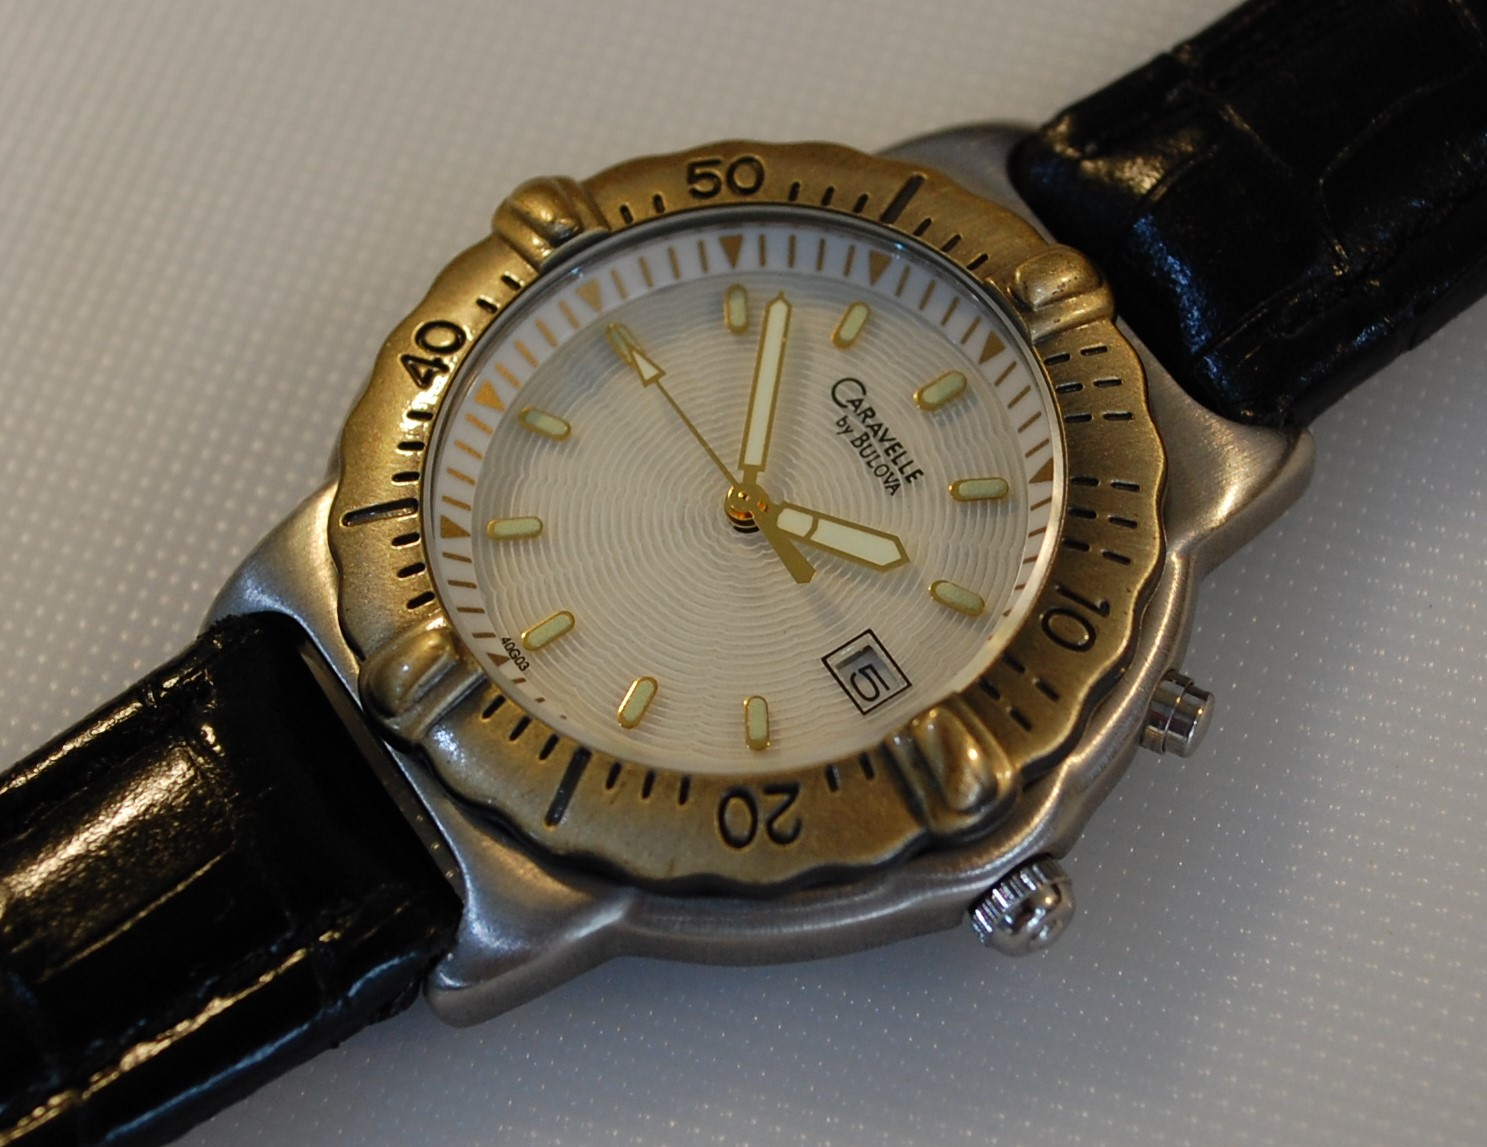 1998 Caravelle by Bulova men's diver style watch